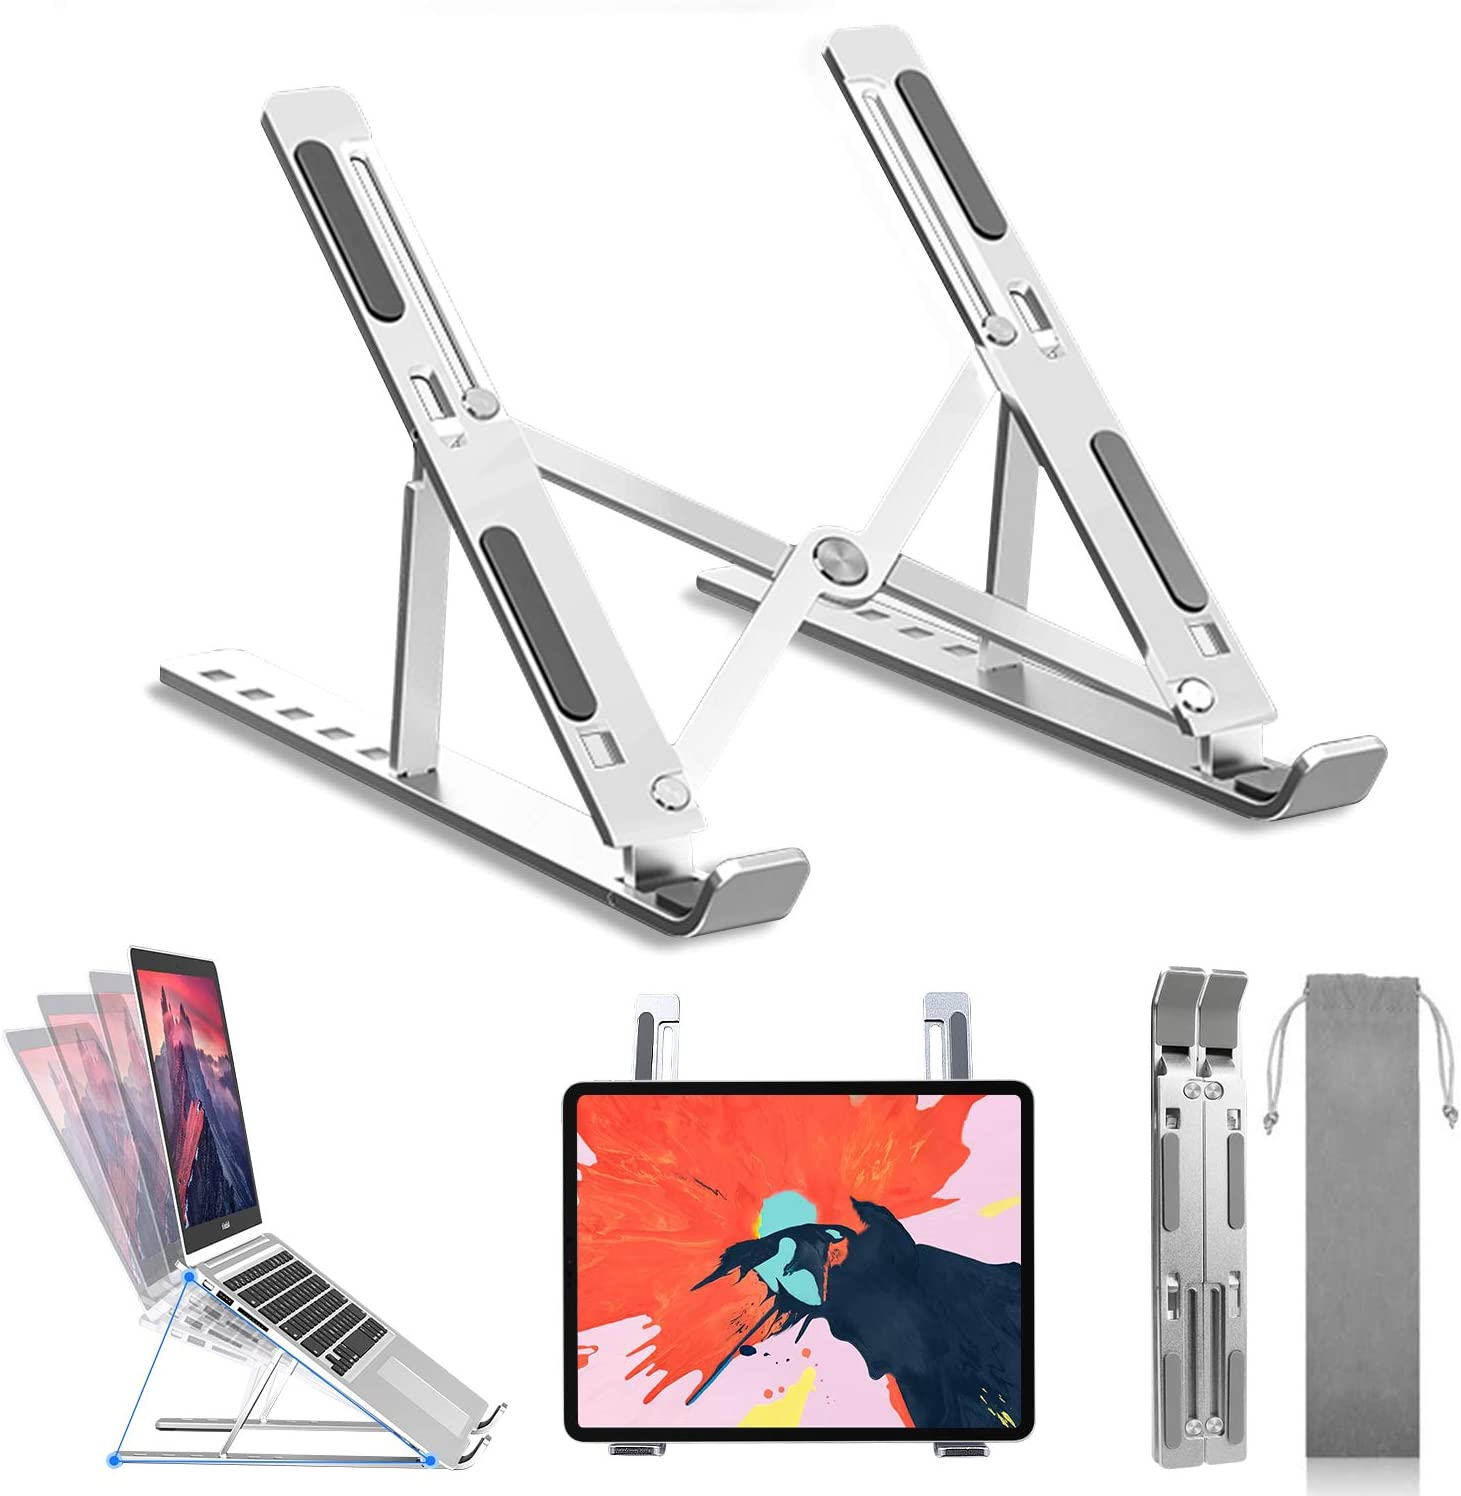 "Miuzei Laptop Stand, Adjustable Laptop Stand for Desk, Laptop Riser Aluminum Foldable Computer Stand, Notebook Holder Stand Support MacBook Air Pro,HP,Lenovo More 8-15.6"" Laptops & Tablet (Silver)"